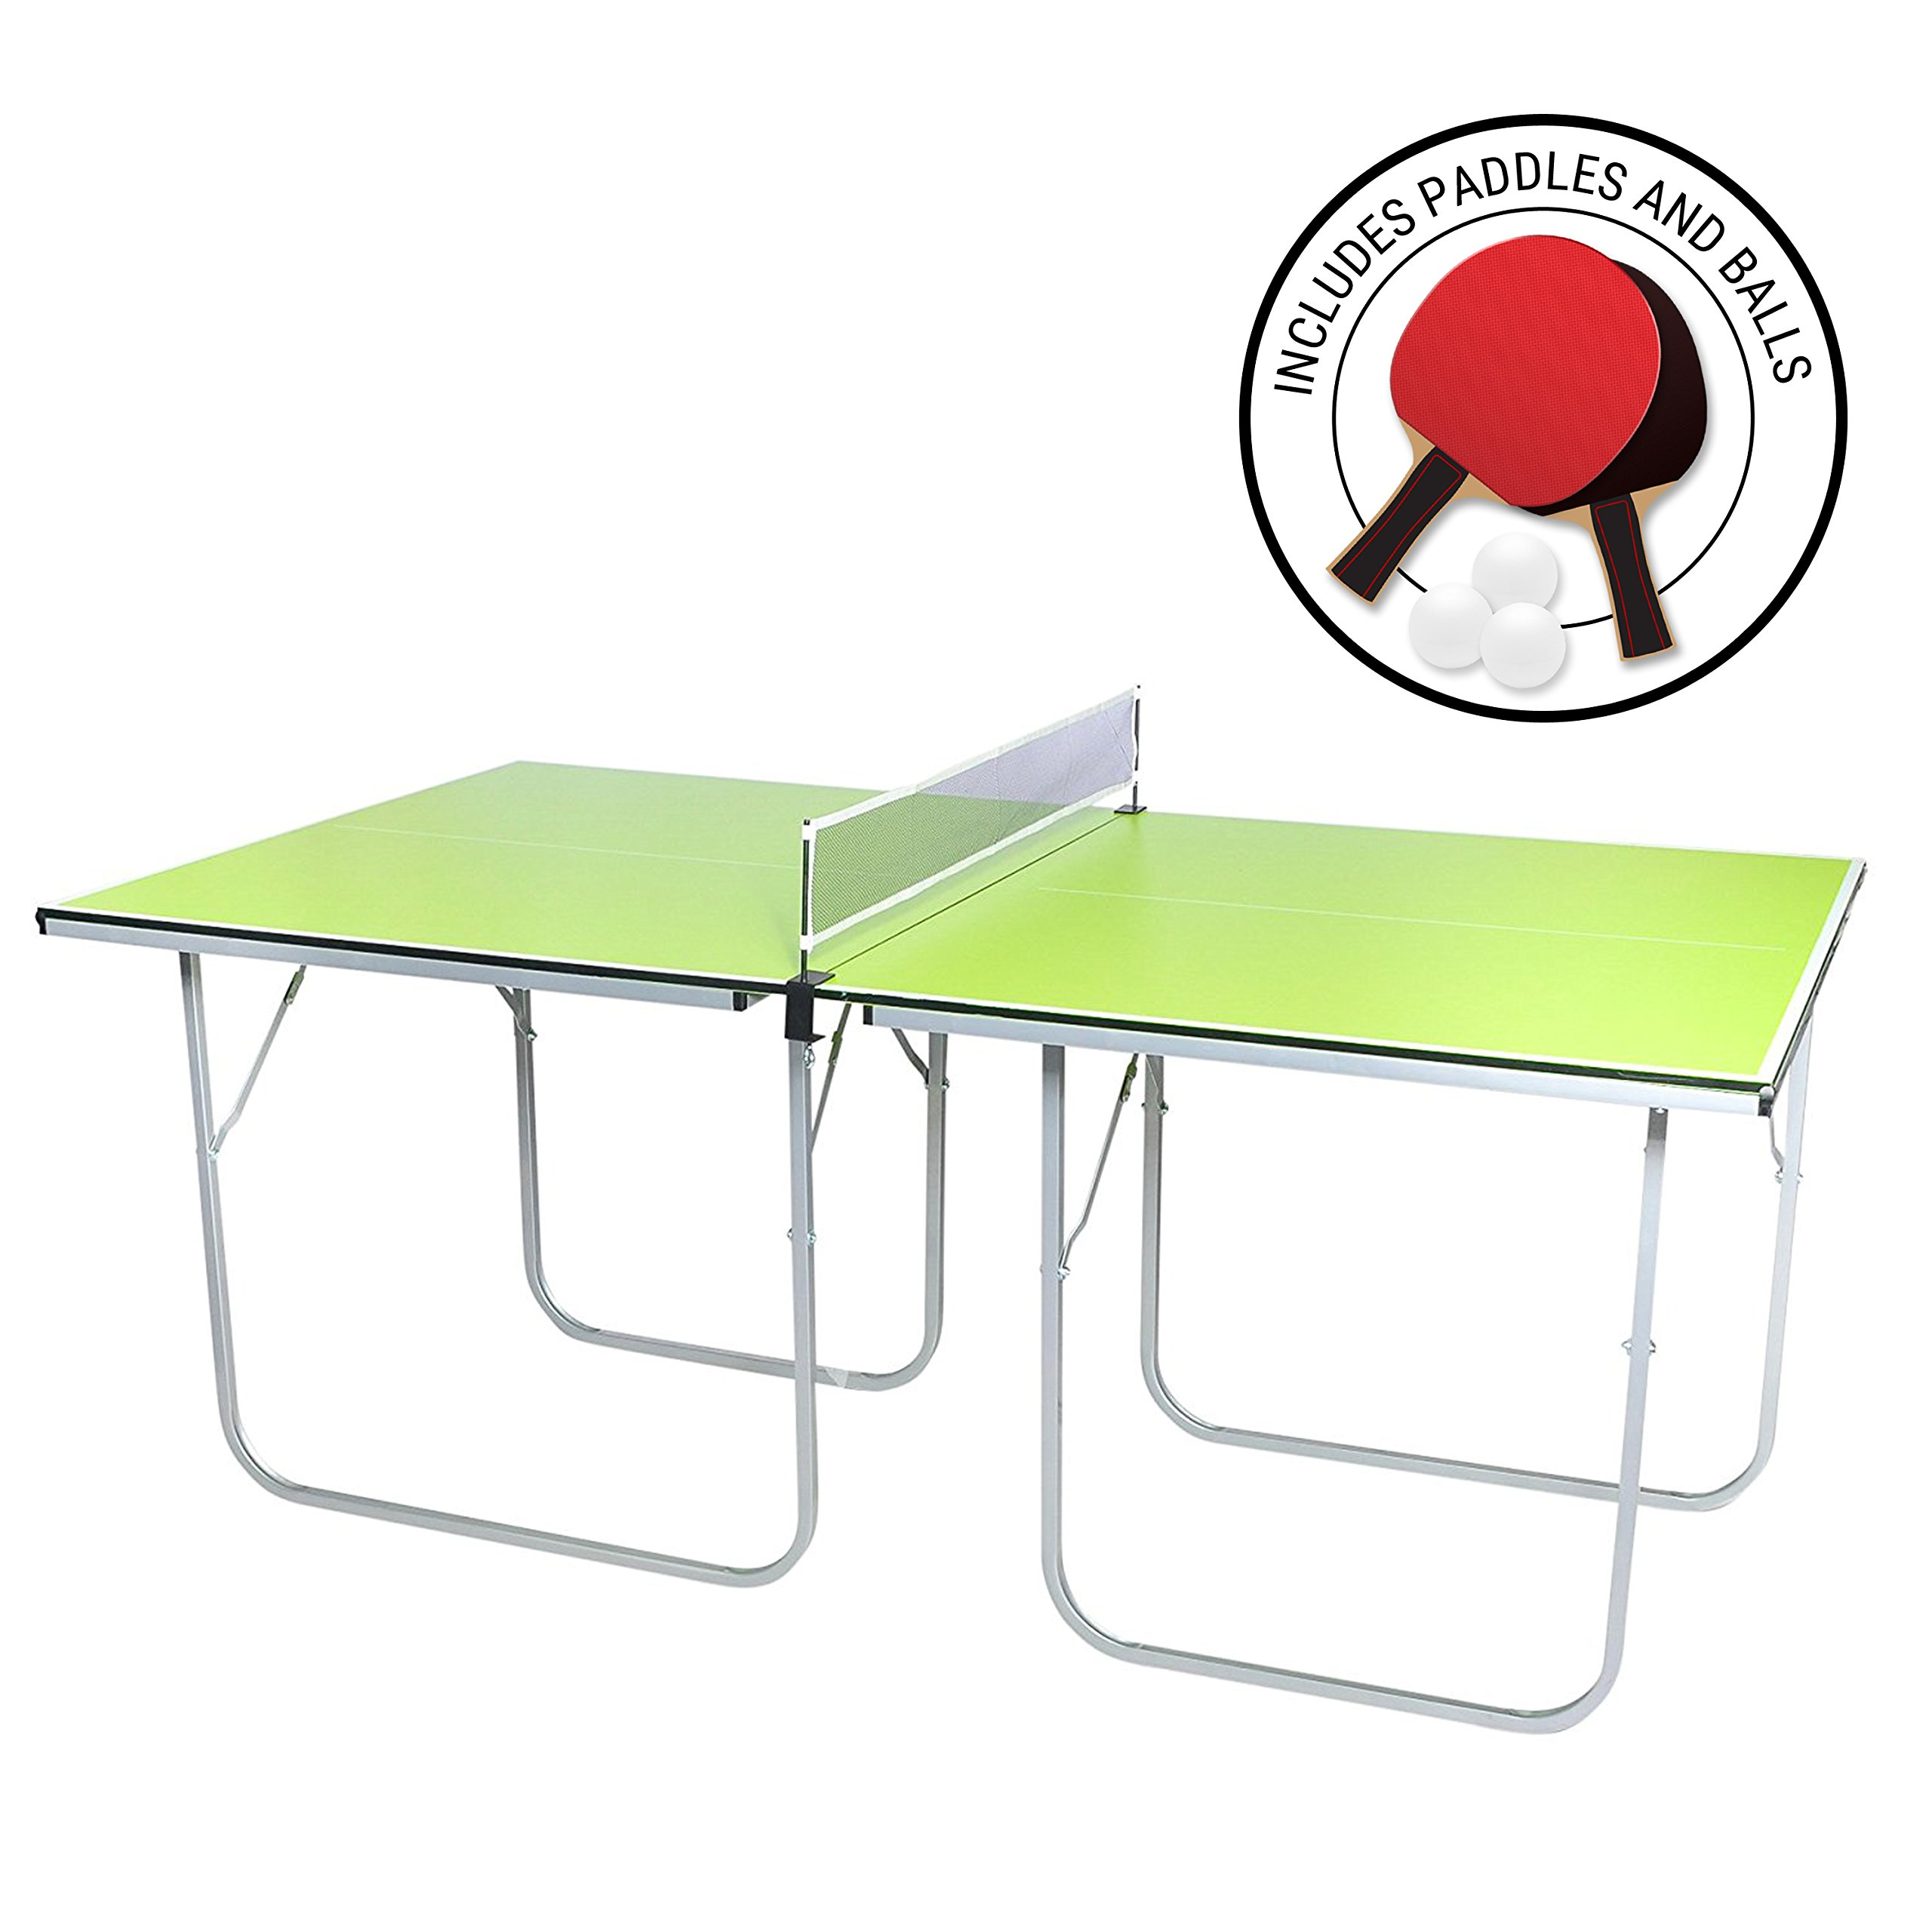 Milliard Mini-Pong Portable Tennis Table - 40 x 70 inches - Includes Net, Paddles, and Balls by Milliard